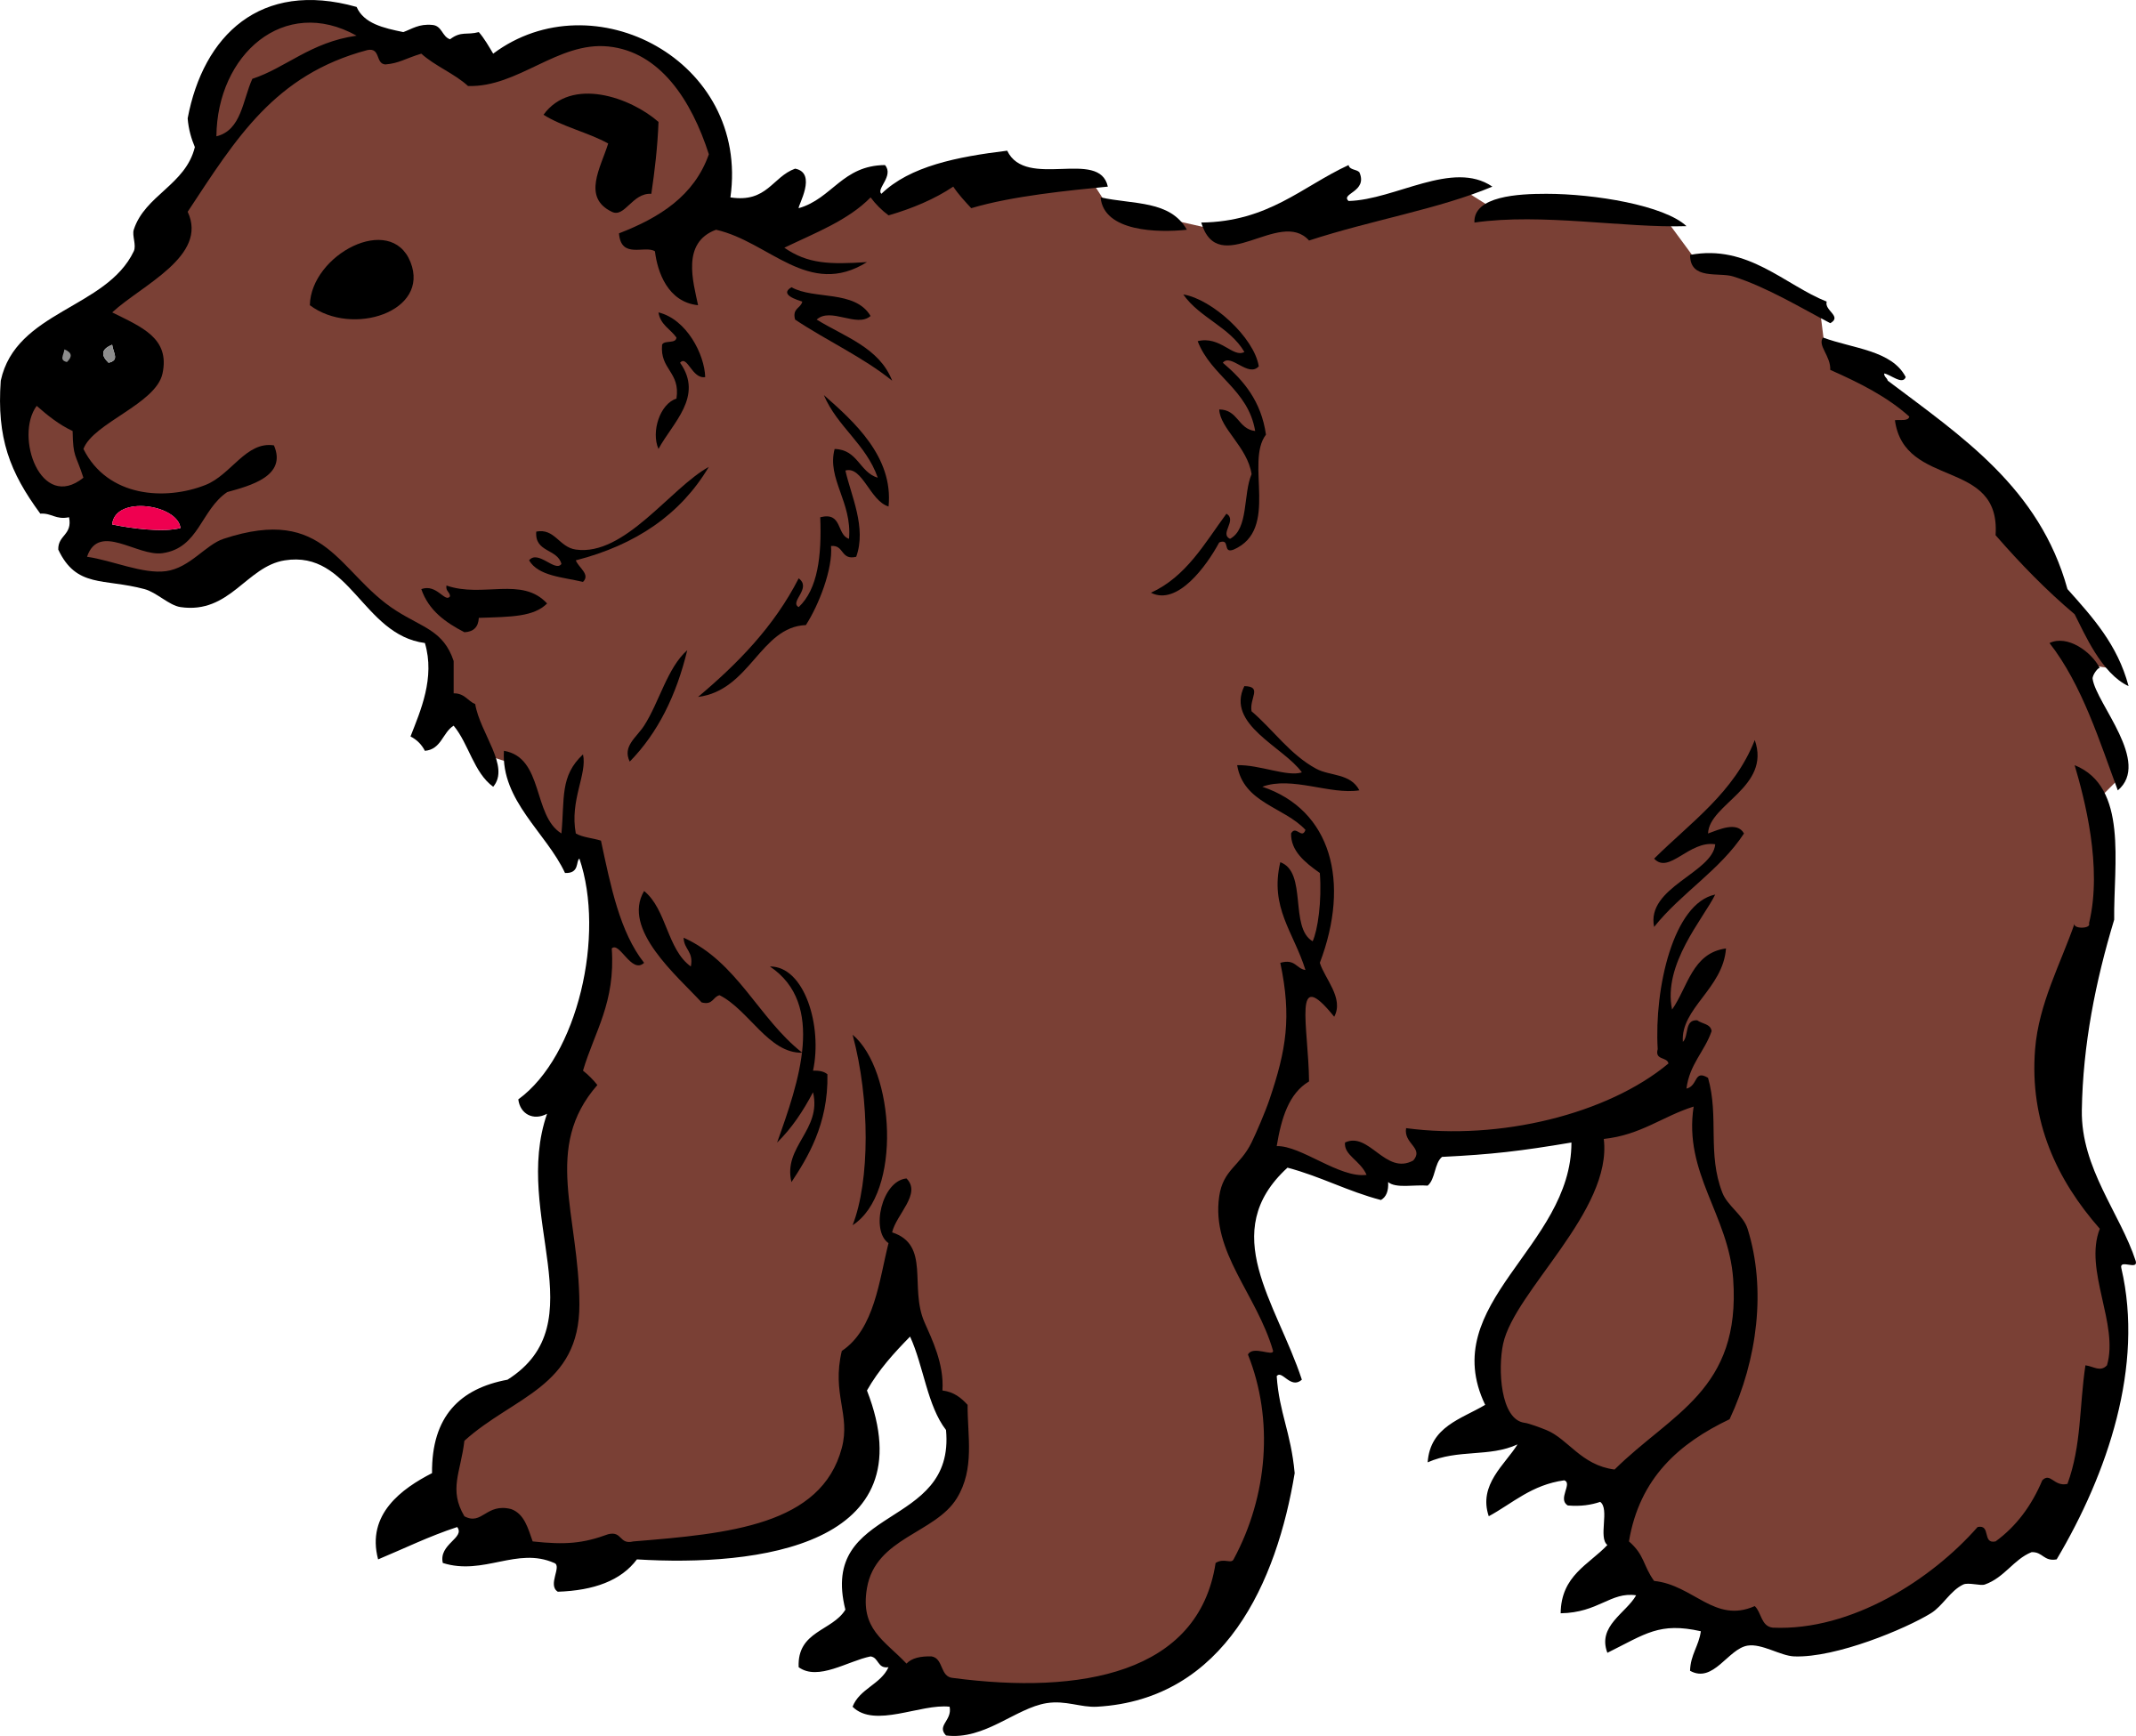 Scary clipart at getdrawings. Bear clip art transparent background jpg freeuse download